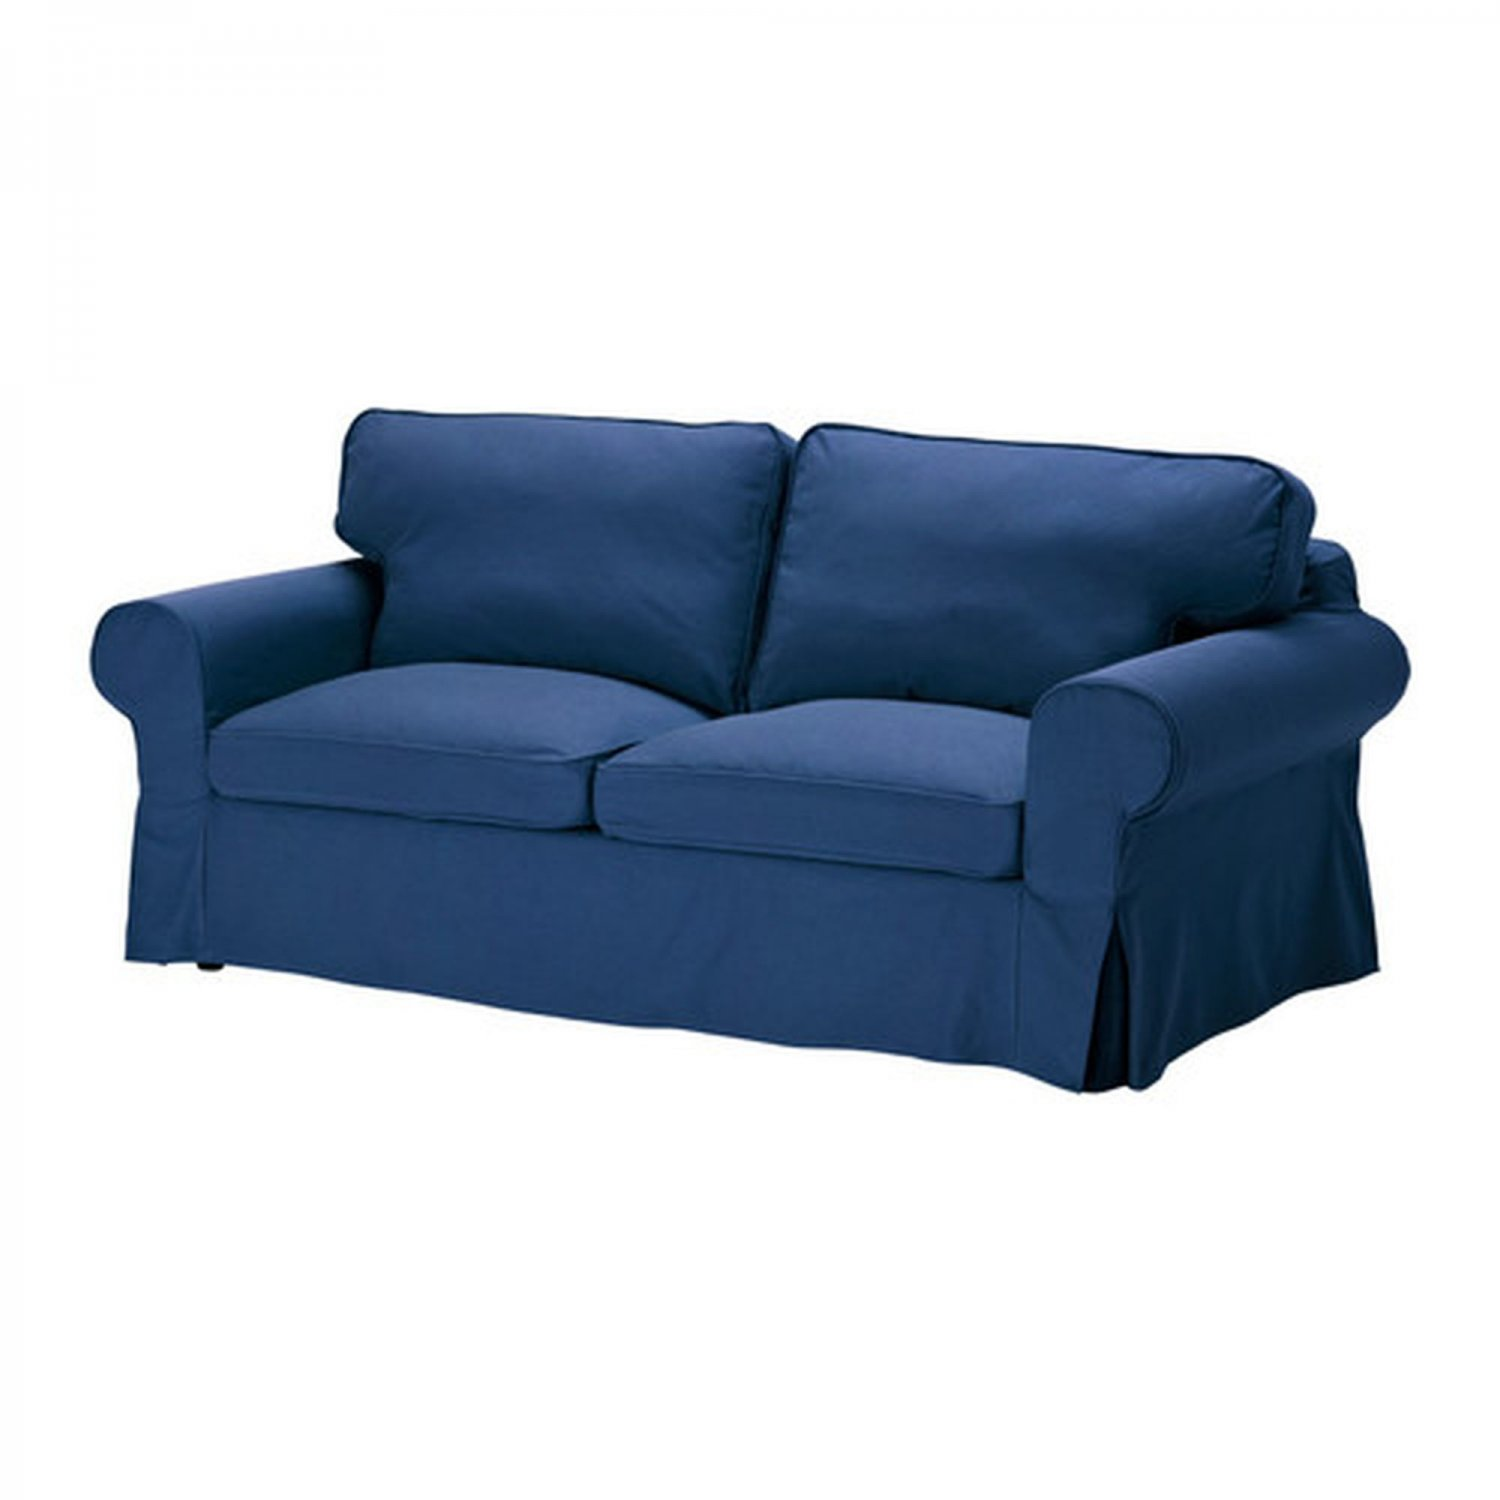 Ikea ektorp 2 seat sofa cover loveseat slipcover idemo blue Loveseat slipcover